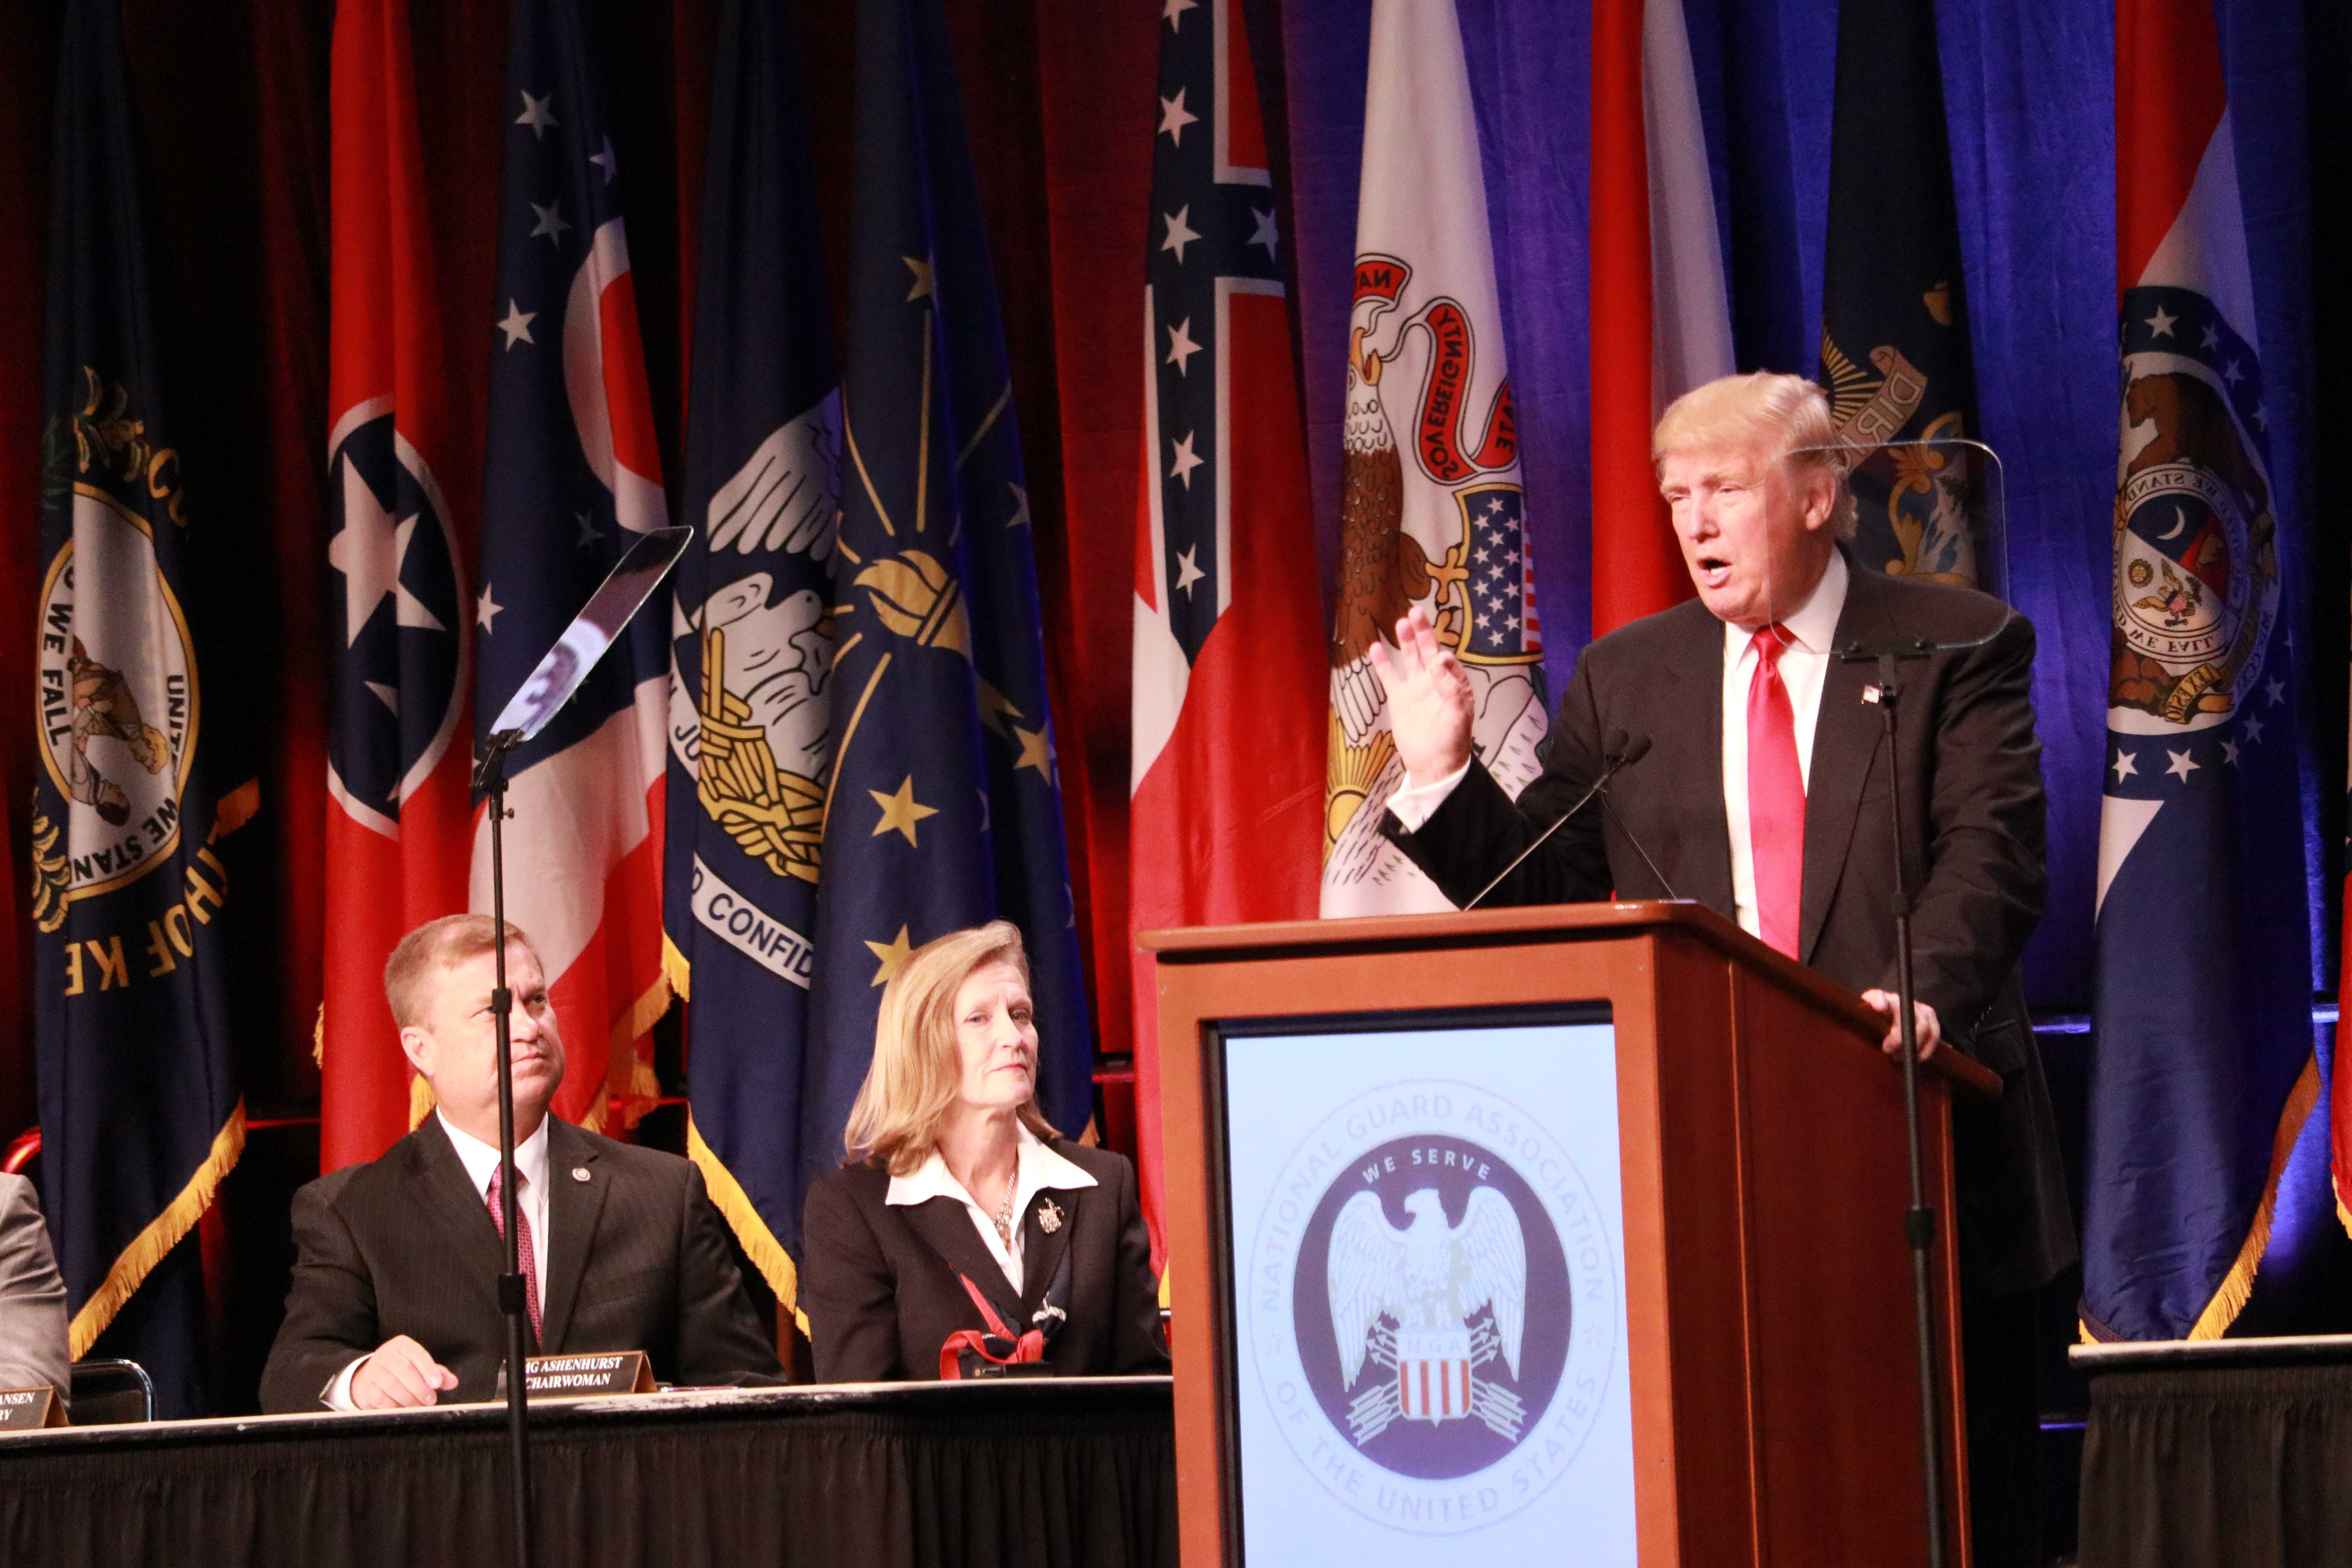 Donald Trump speaking at the National Guard Association's 138th General Conference and Exhibition. Photo by Terry Wright.